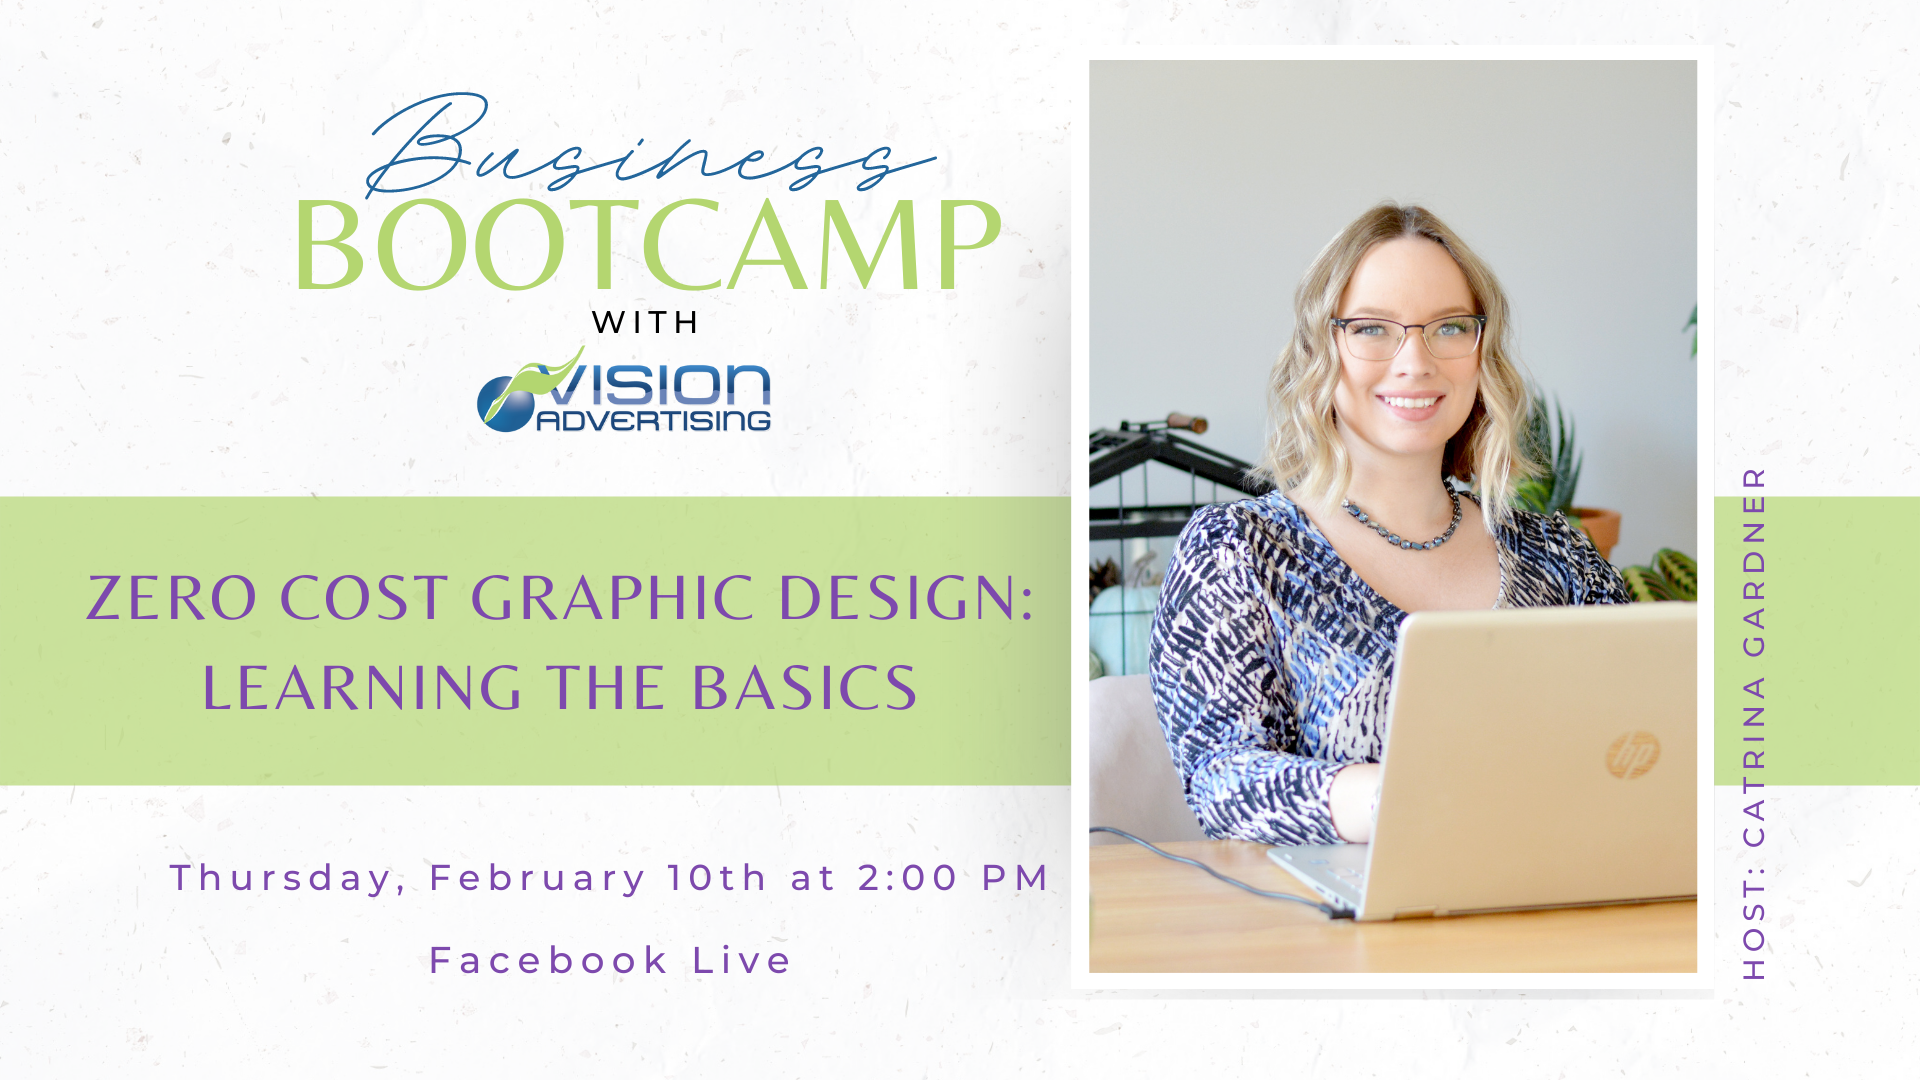 An image promoting the Business Bootcamp, Zero Cost Graphic Design: Learning the Basics, with a pictureof Communications Manager Catrina Gardner using a laptop.